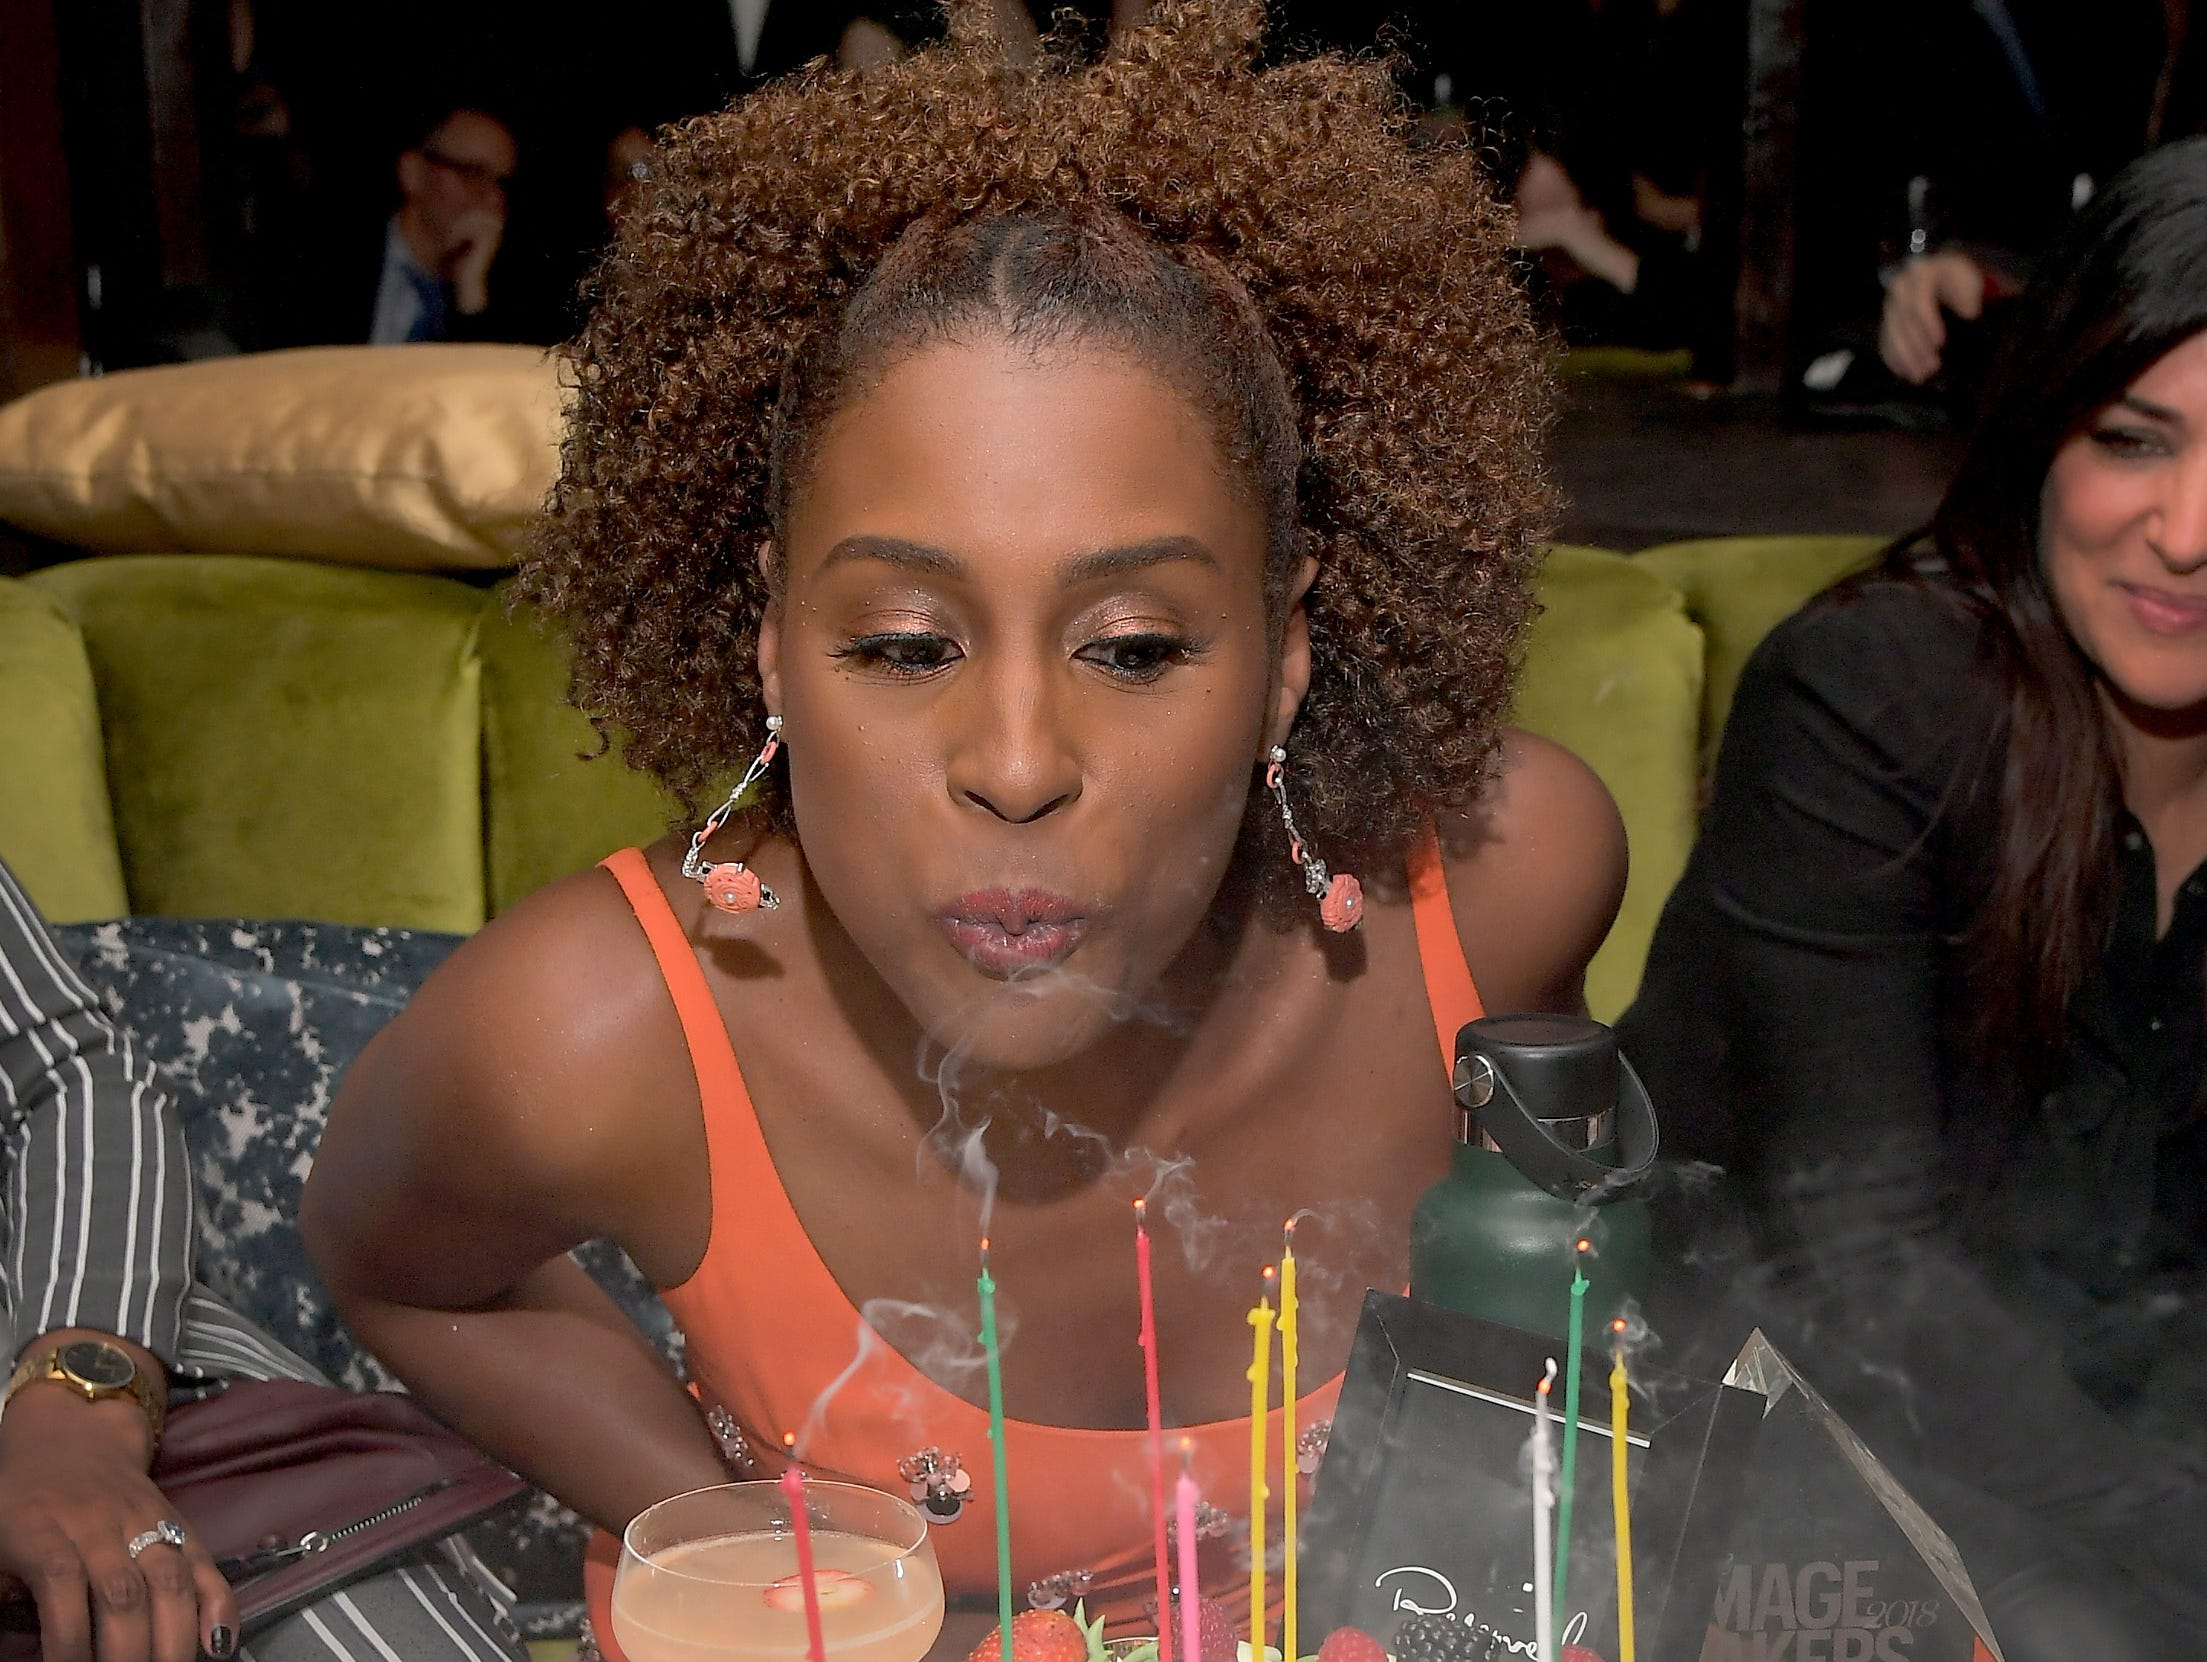 Jan. 11: Issa Rae blows out her birthday candles at Marie Claire's Image Makers Awards in West Hollywood, California.